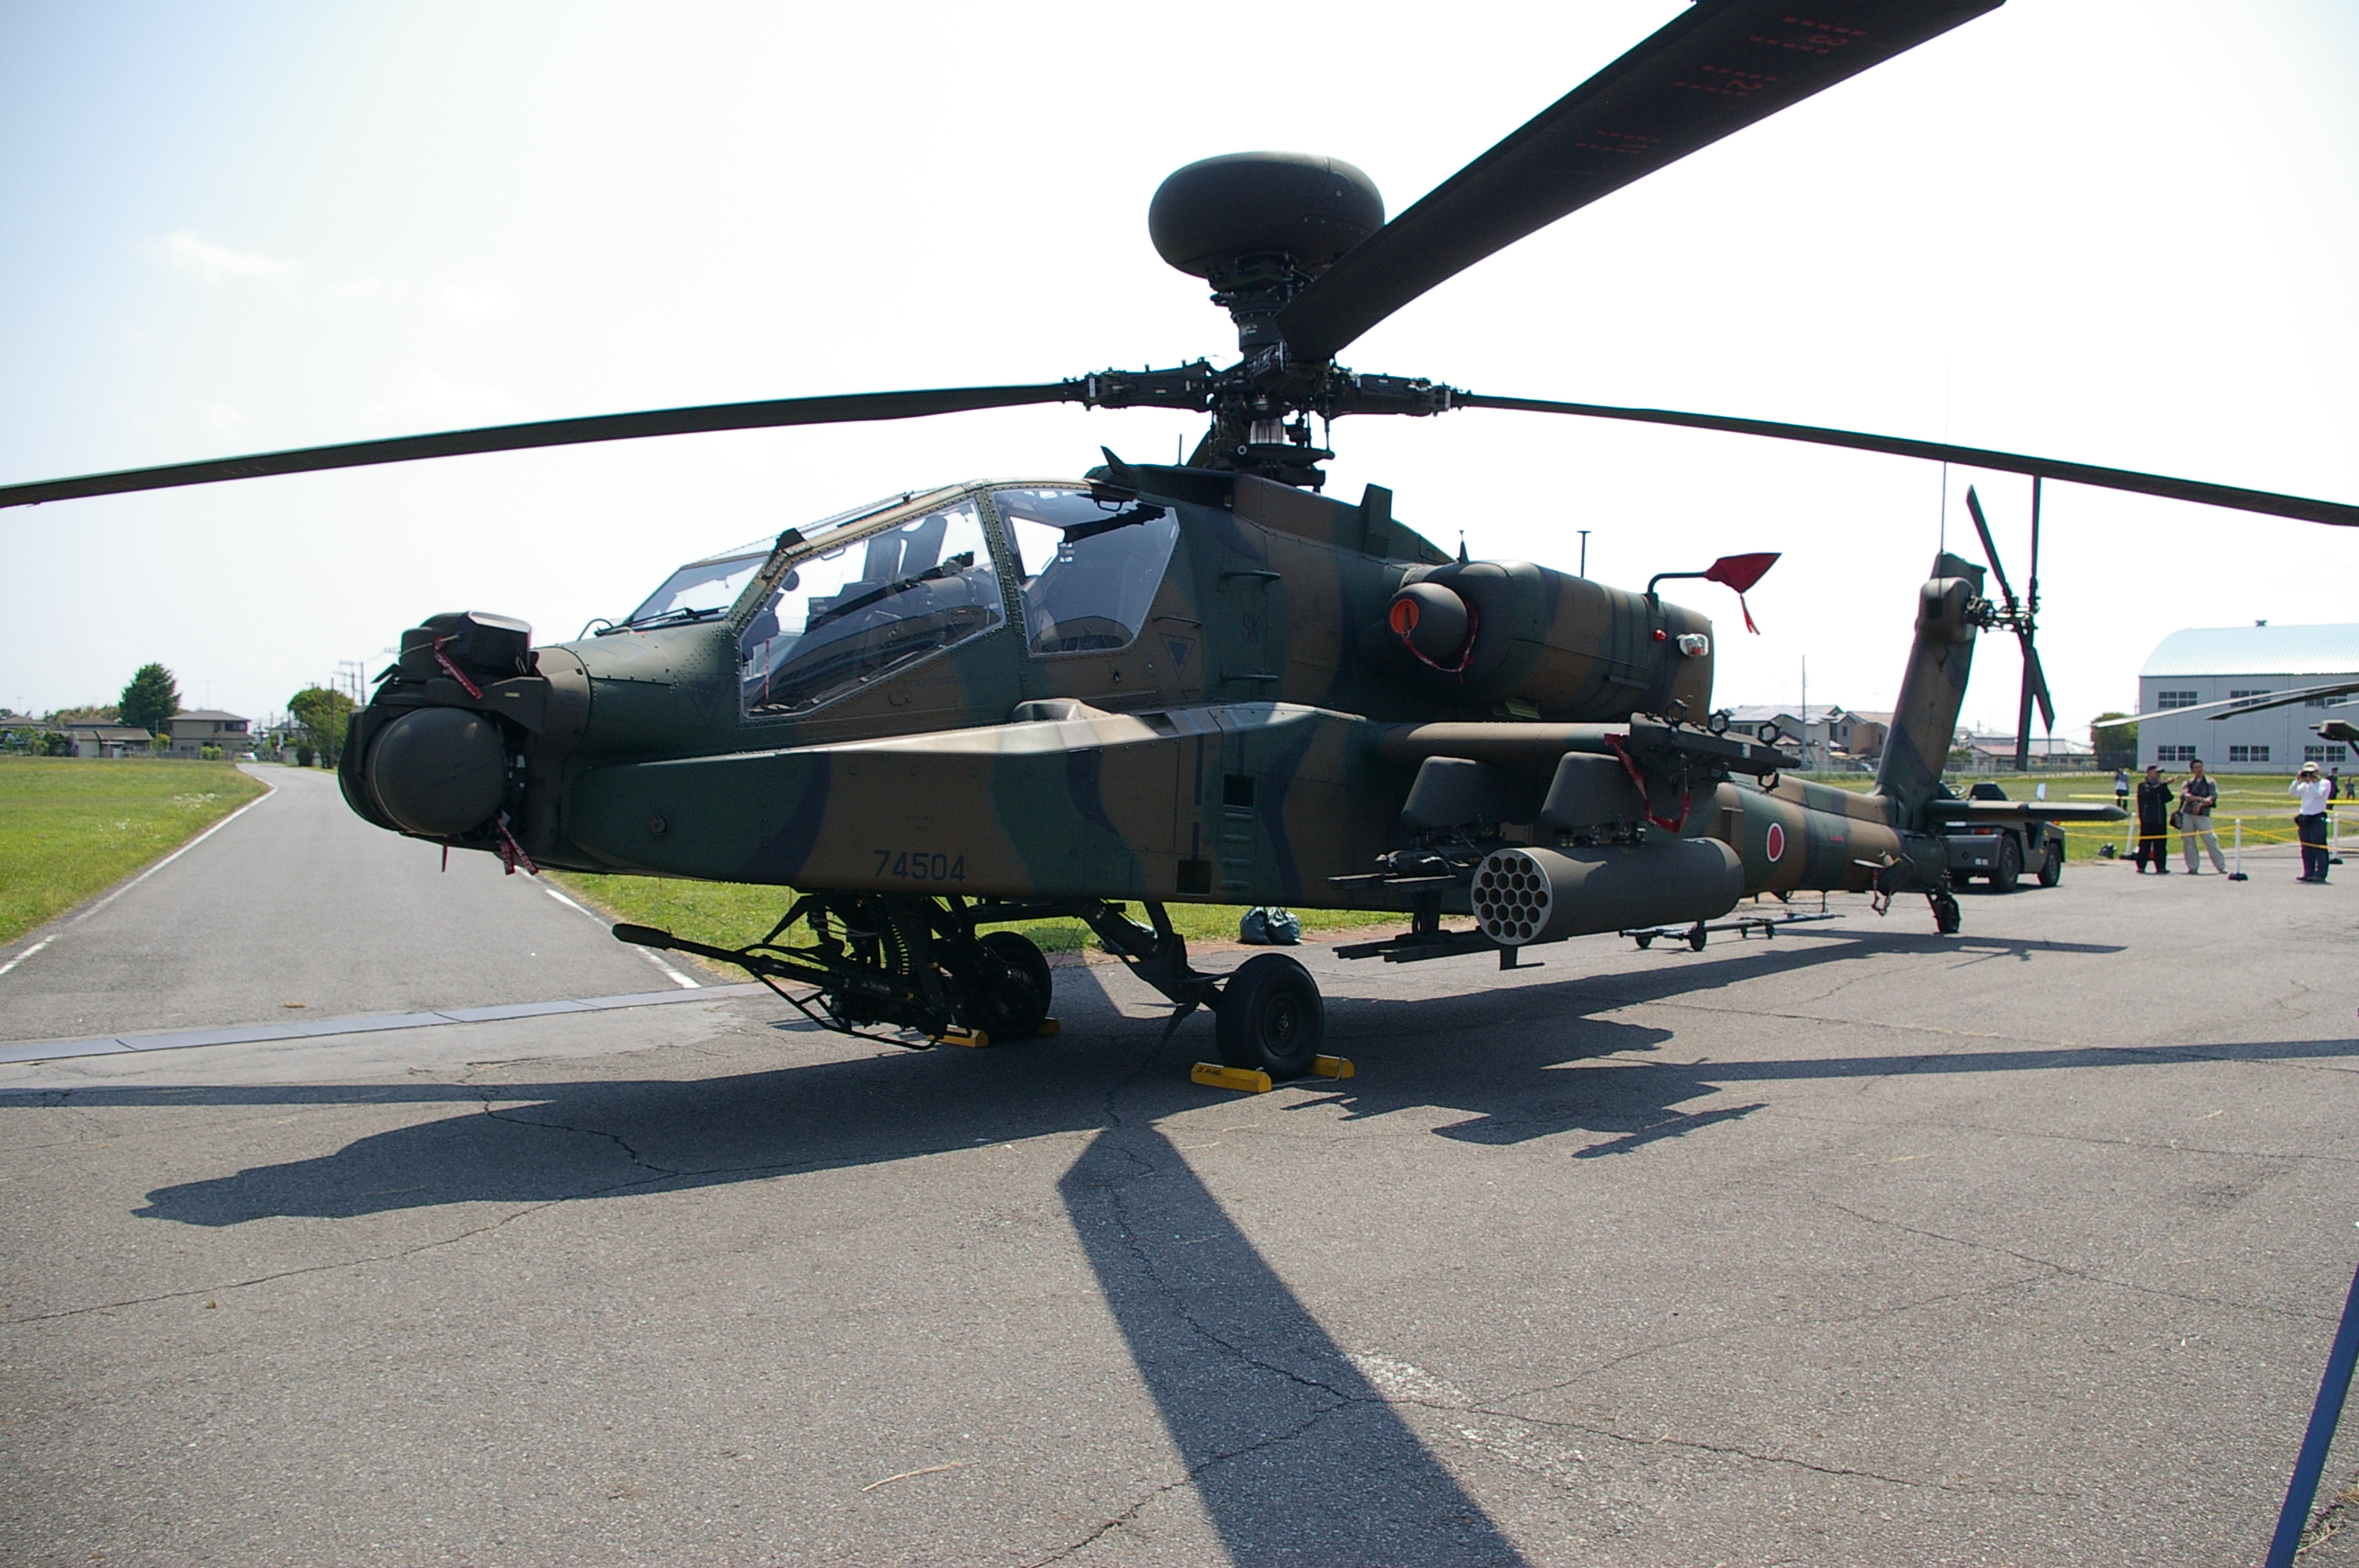 hughes helicopters for sale with Boeing Ah 64 Apache on Mh 6 Little Bird Gunship additionally Xf 11 Was Howard Hughes Might Have Been Reconnaissance Aircraft further Former Cia Spy Ship Hughes Glomar Explorer Sold For Scrap likewise File OH 6 Cayuse likewise 141012517080.